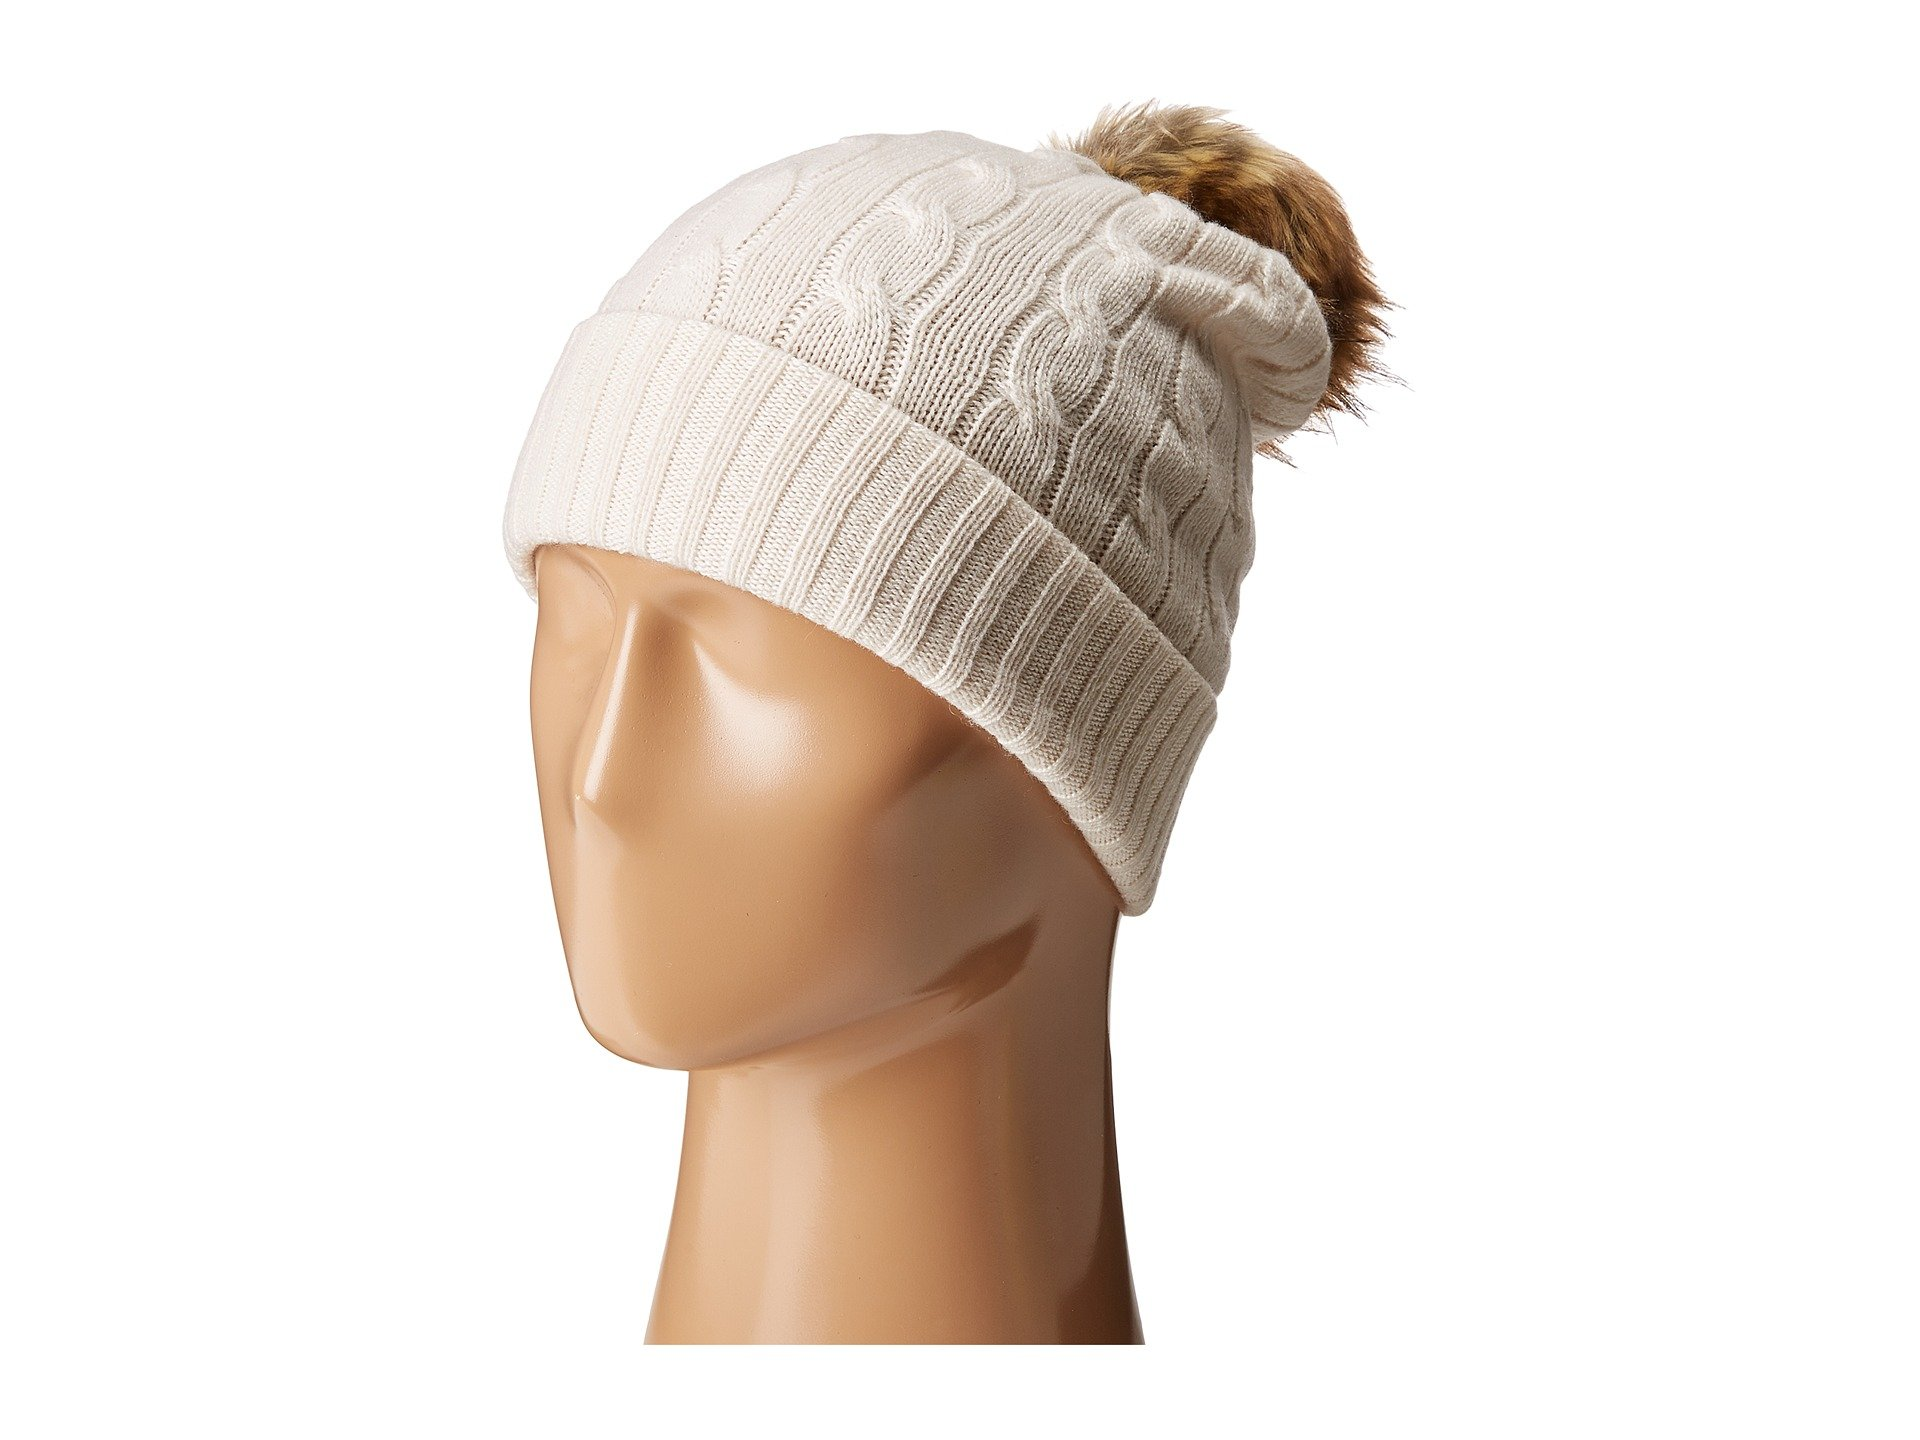 Polo Ralph Lauren Cashmere Classic Cuff Hat With Faux Fur Pom In Heritage  Cream 80b3d1772